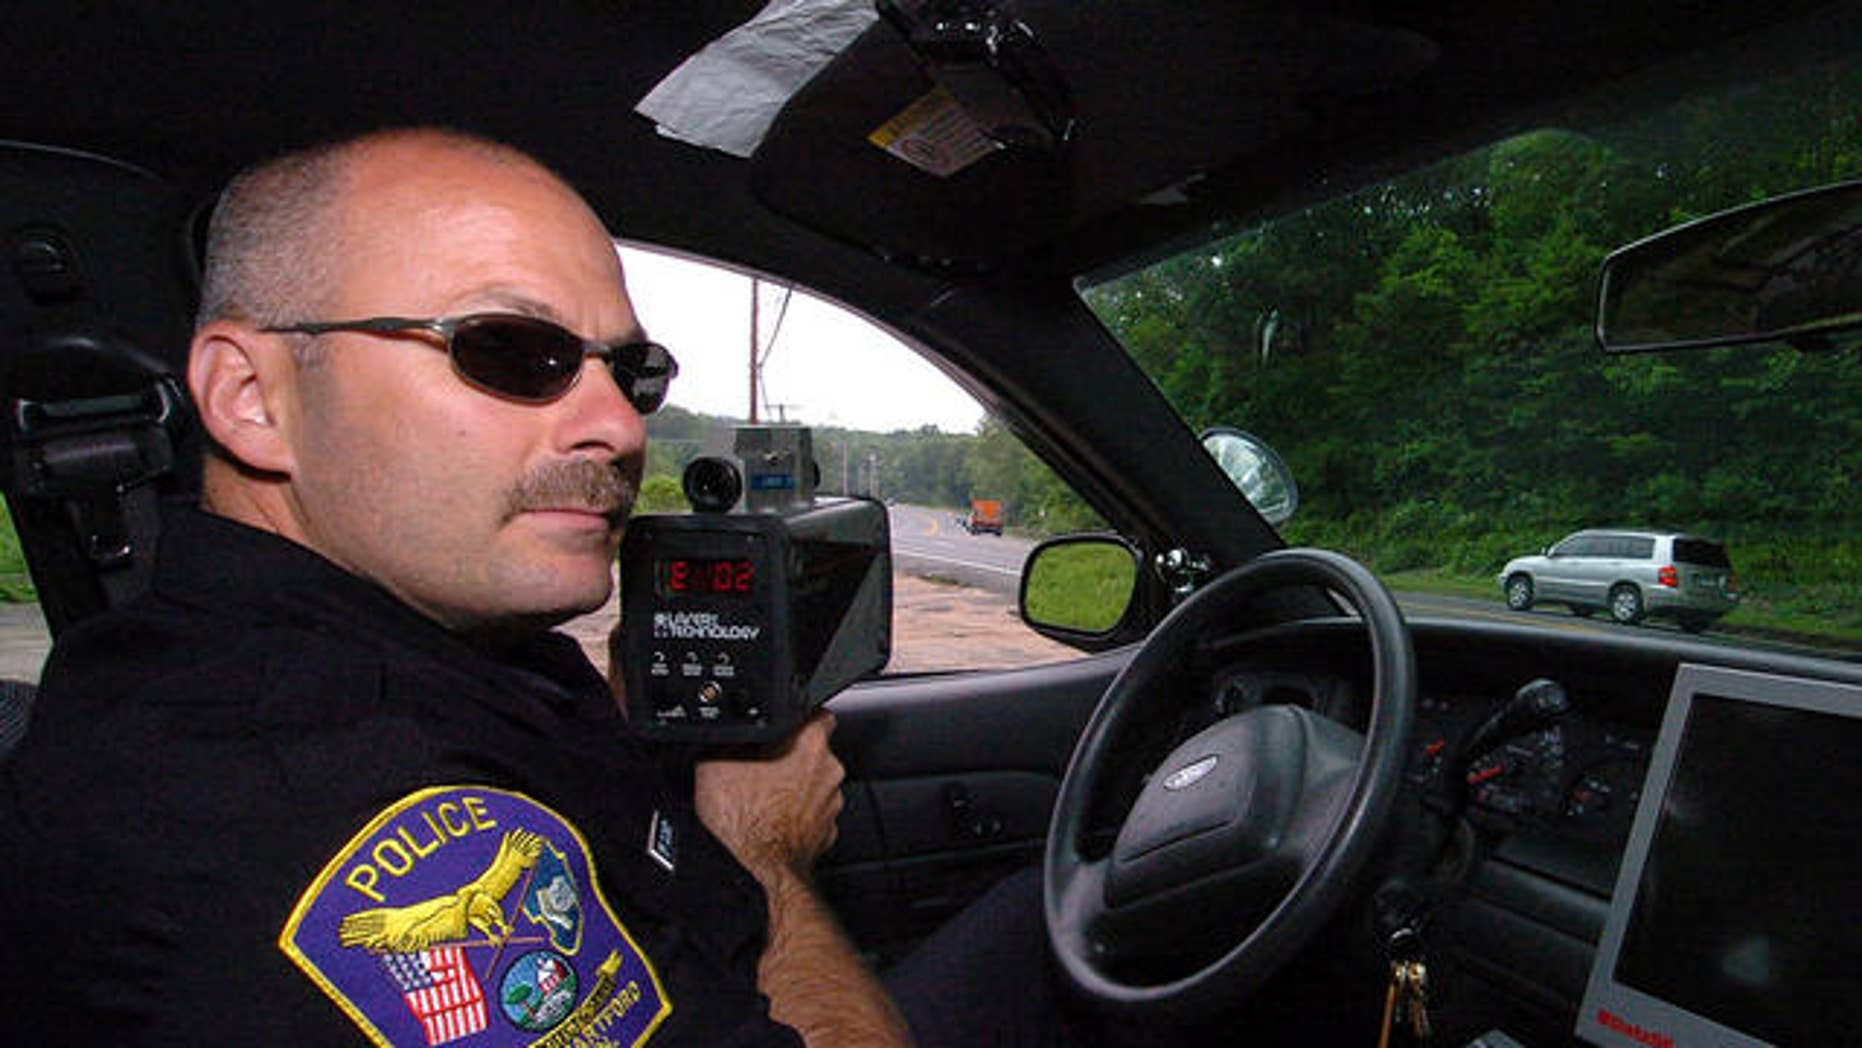 ** ADVANCE FOR WEEKEND, JULY 1-2  ** West Hartford Police Officer Kerry Cloukey uses a laser unit to detect speeders on Route 44 on Avon Mountain in West Hartford, Conn., Thursday, June 22, 2006.  Starting July 1, 2006, a new Connecticut law adds $10 to every ticket issued for speeding, failure to yield, making an illegal turn and dozens of other moving violations.  (AP Photo/Jessica Hill)